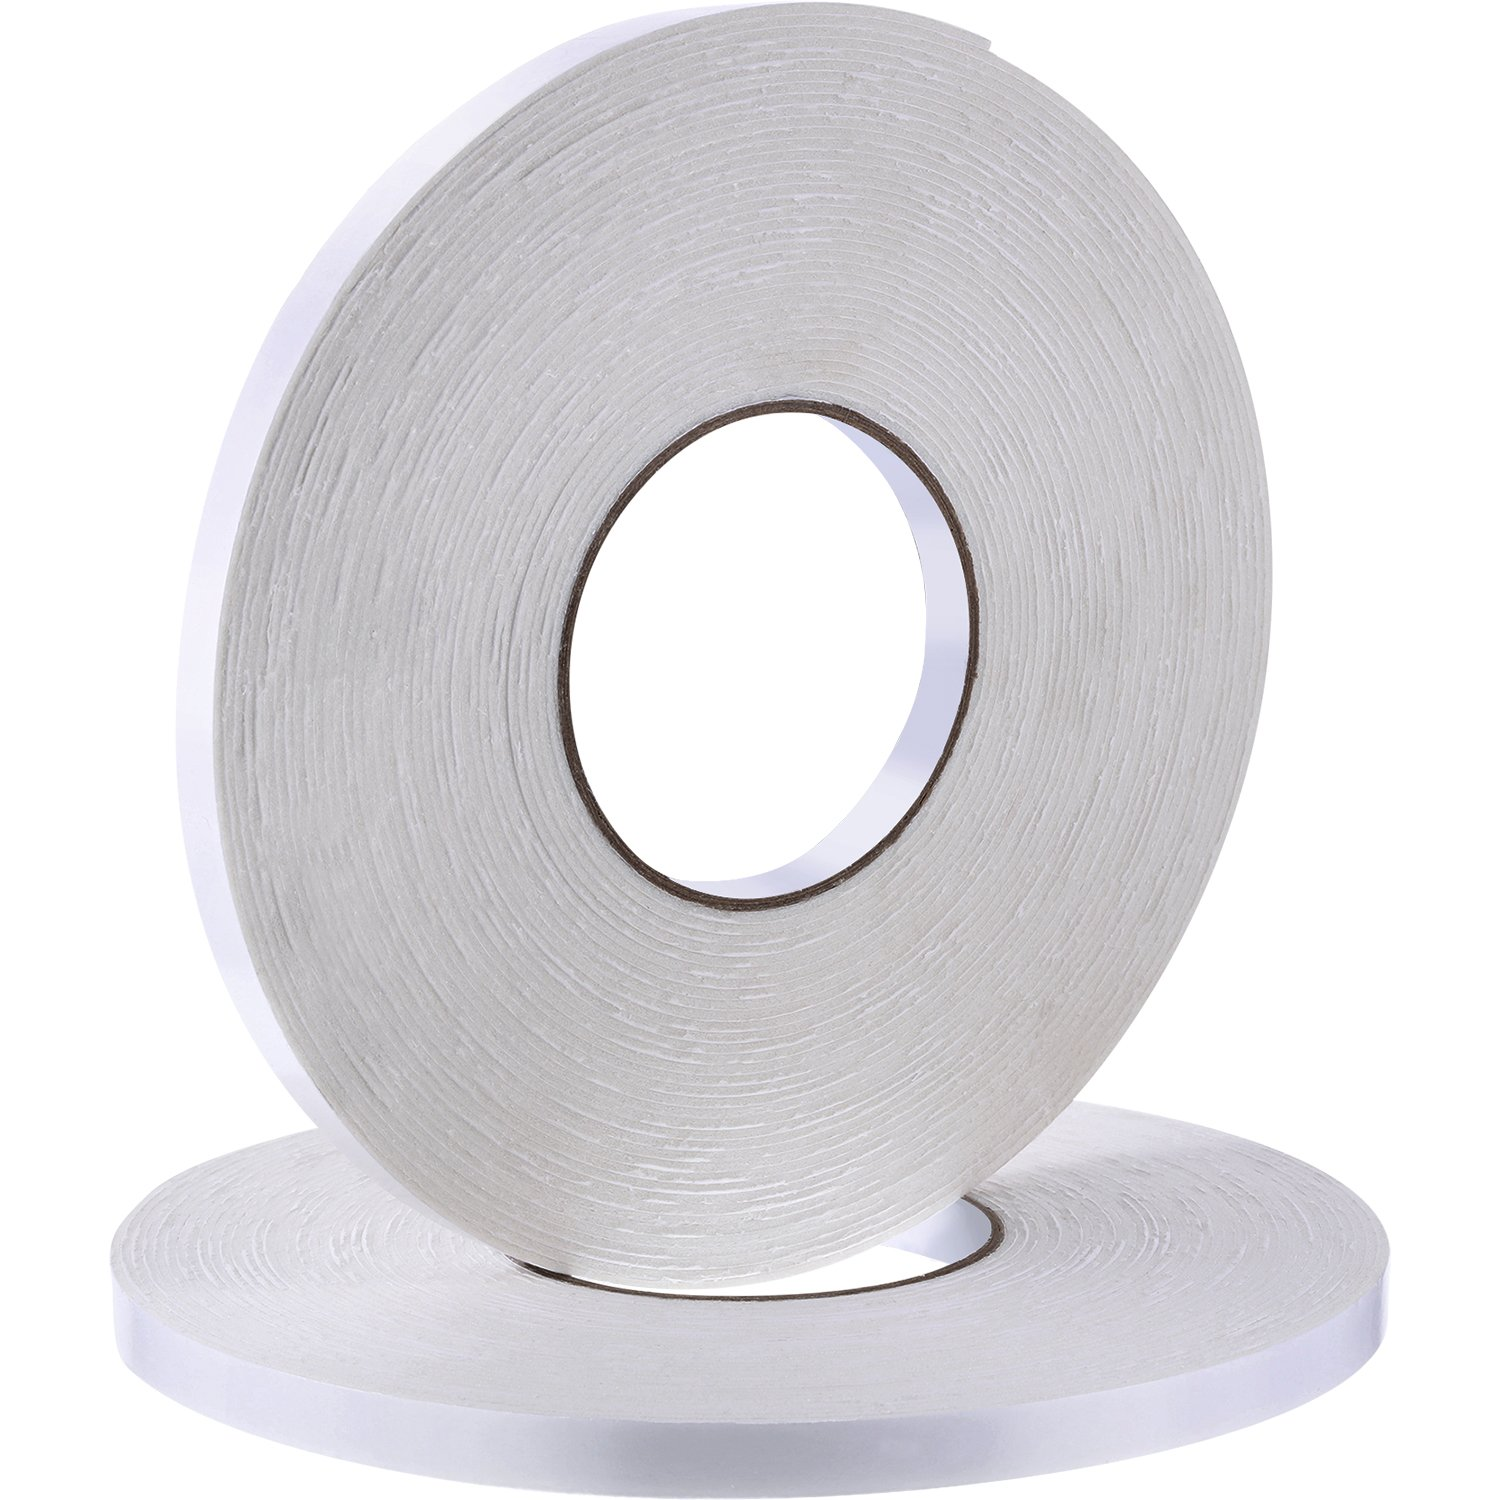 2 Rolls Double Sided Foam Tape